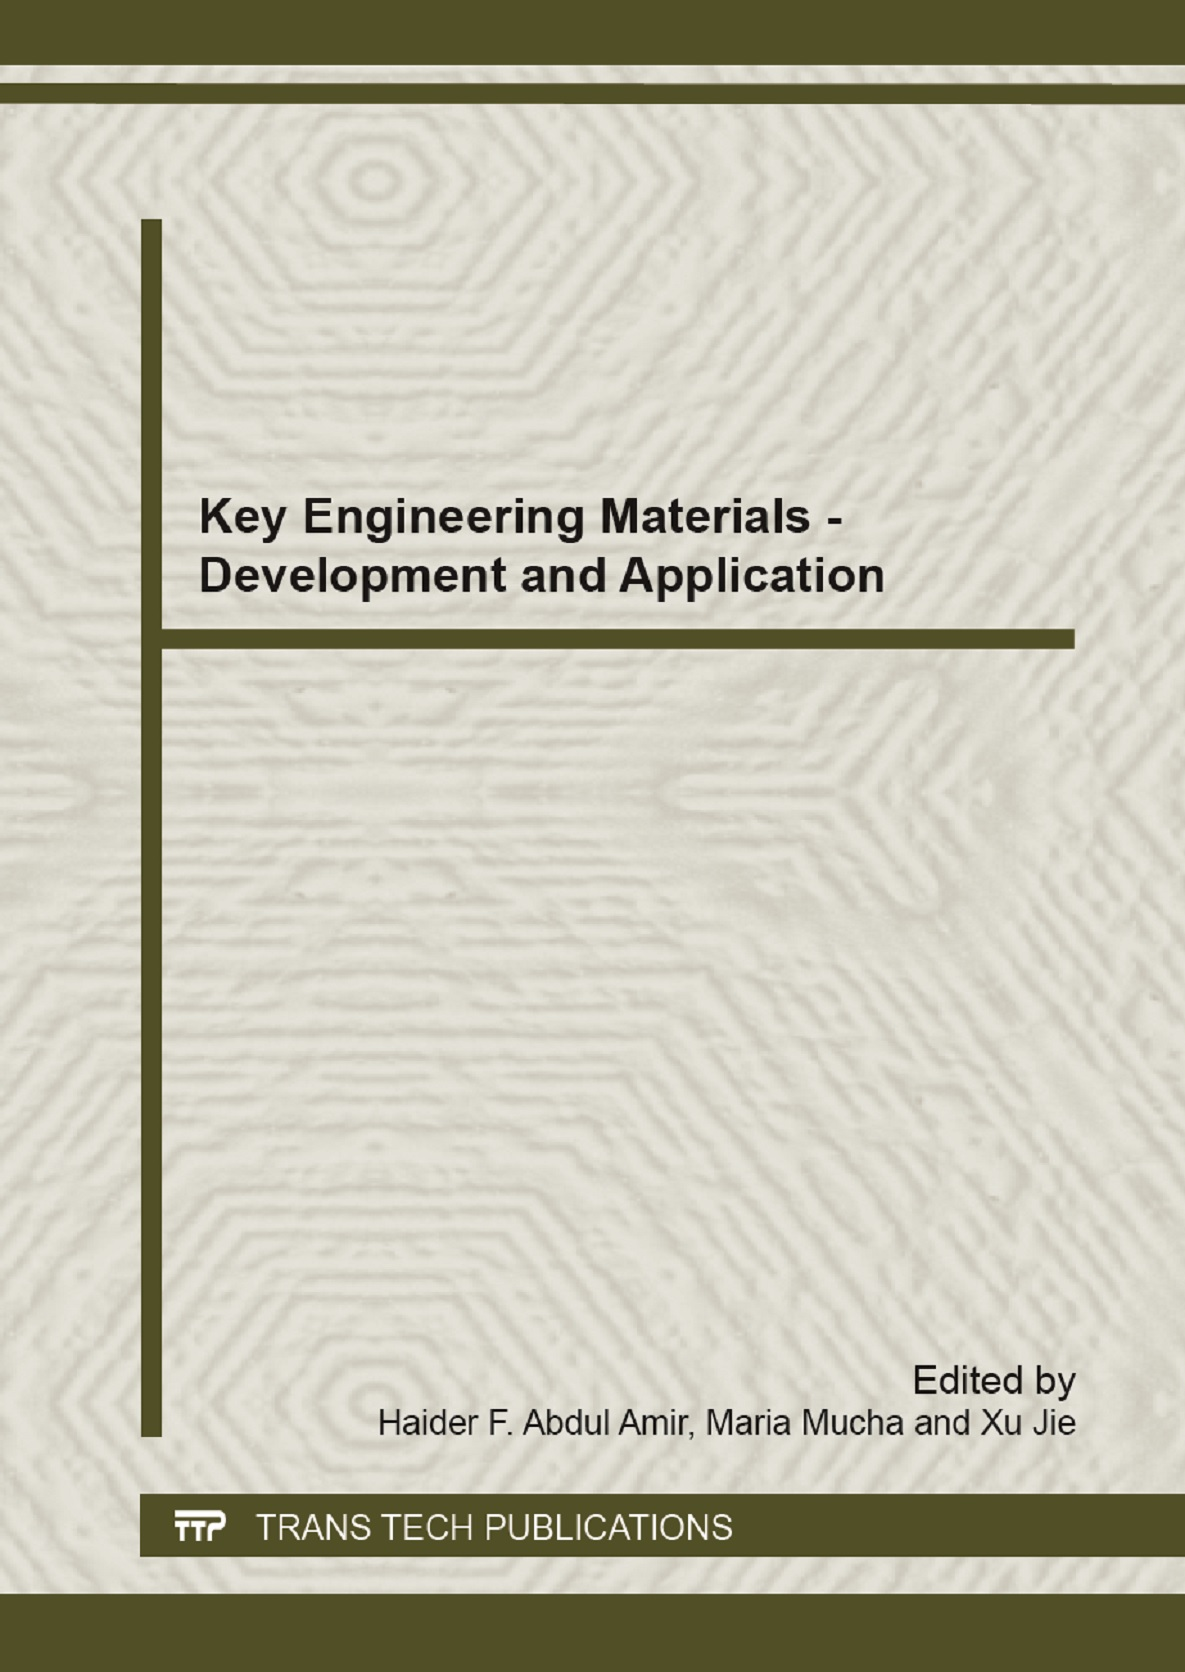 Key Engineering Materials - Development and Application